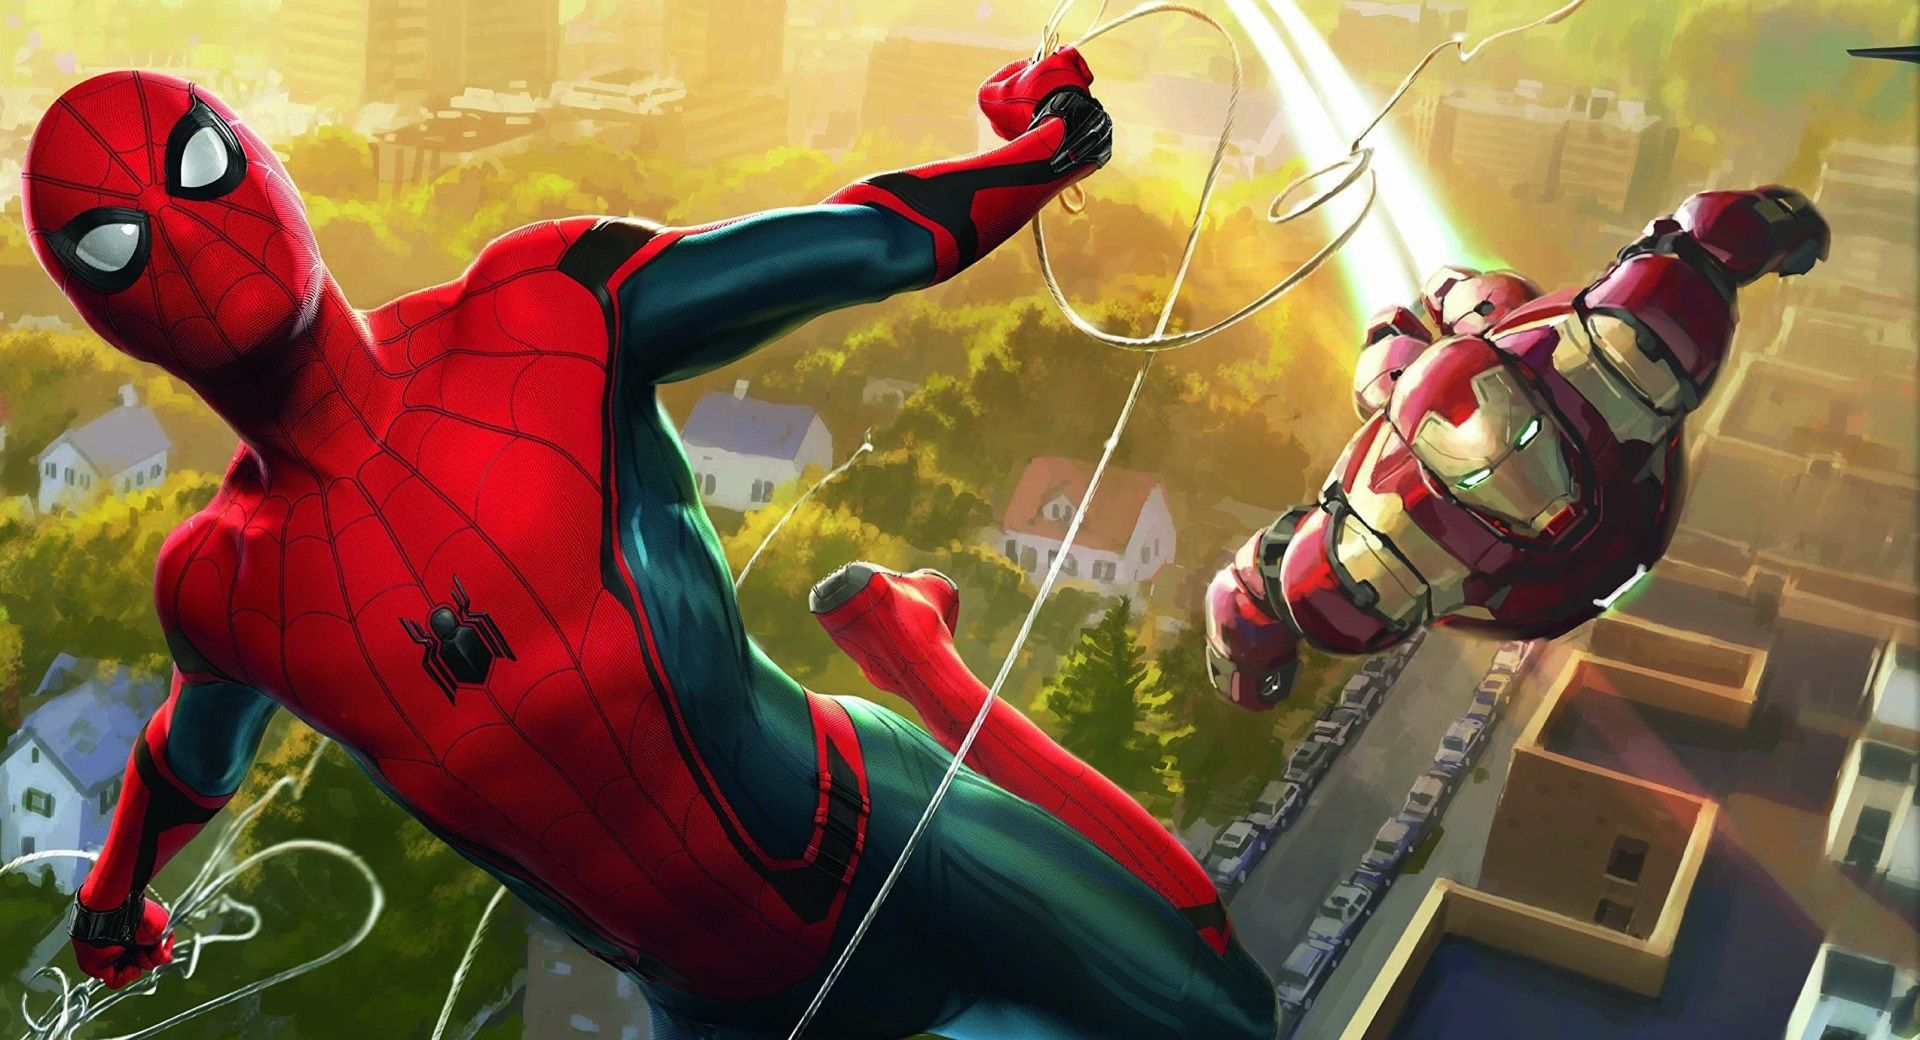 1920x1040 Spiderman Homecoming Wallpaper For Pc Free Man Wallpaper Iron Man Artwork Iron Man Spiderman